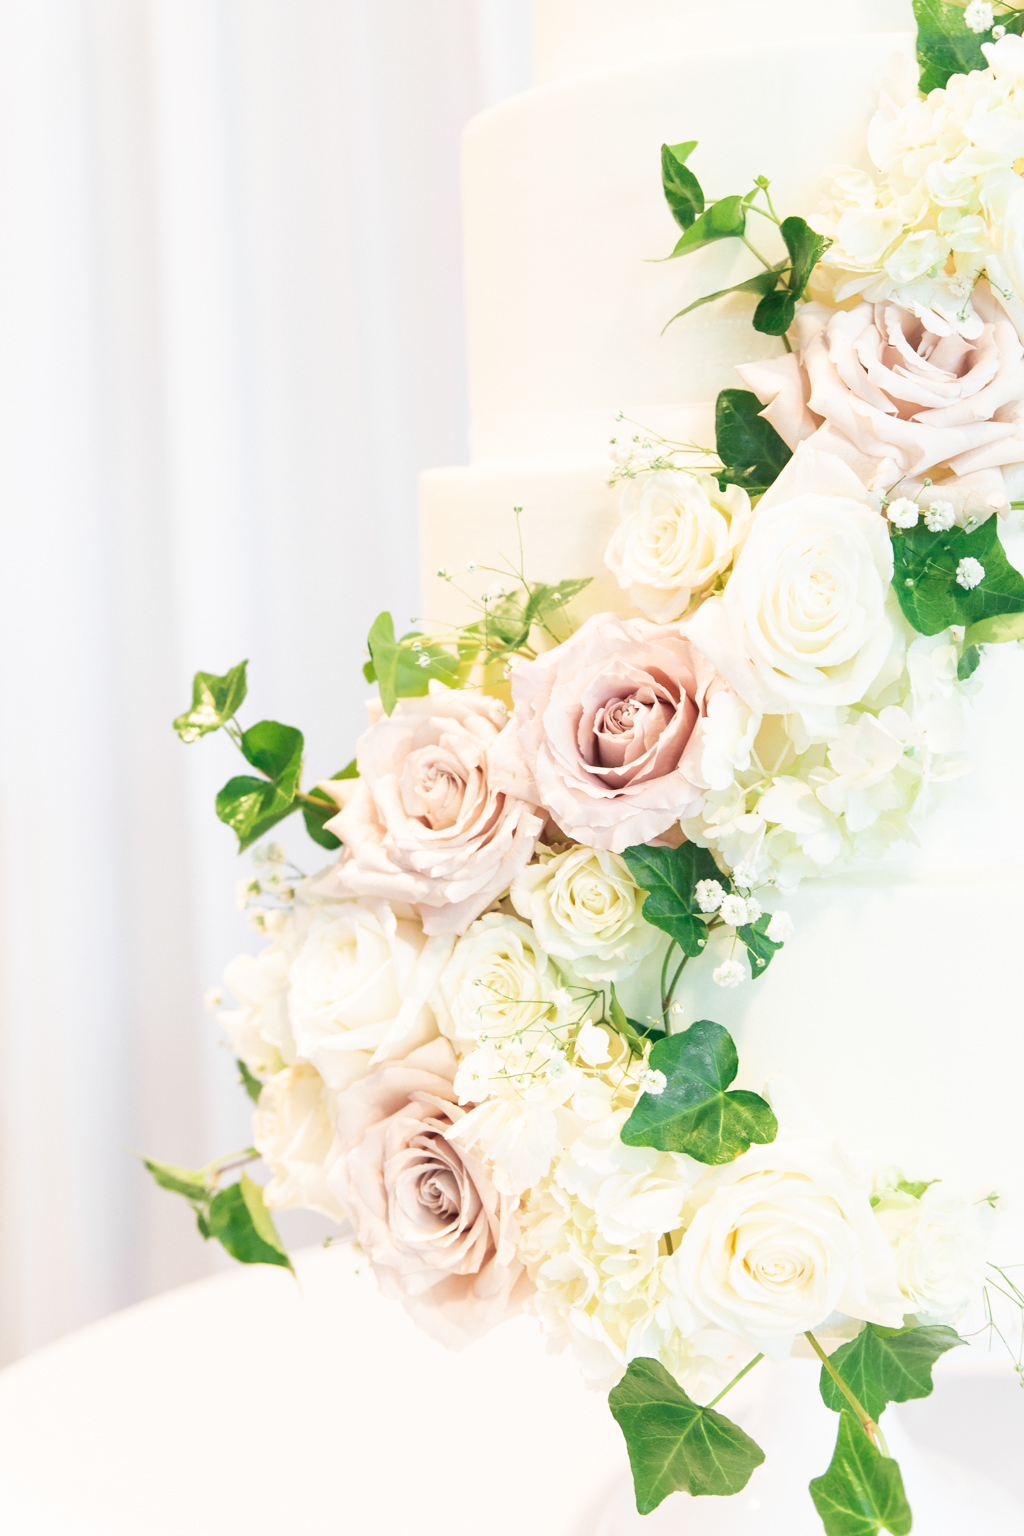 Classic Round White Wedding Cake with Cascading Blush Pink and White Roses, Baby's Breath and Greenery Leaves Flowers